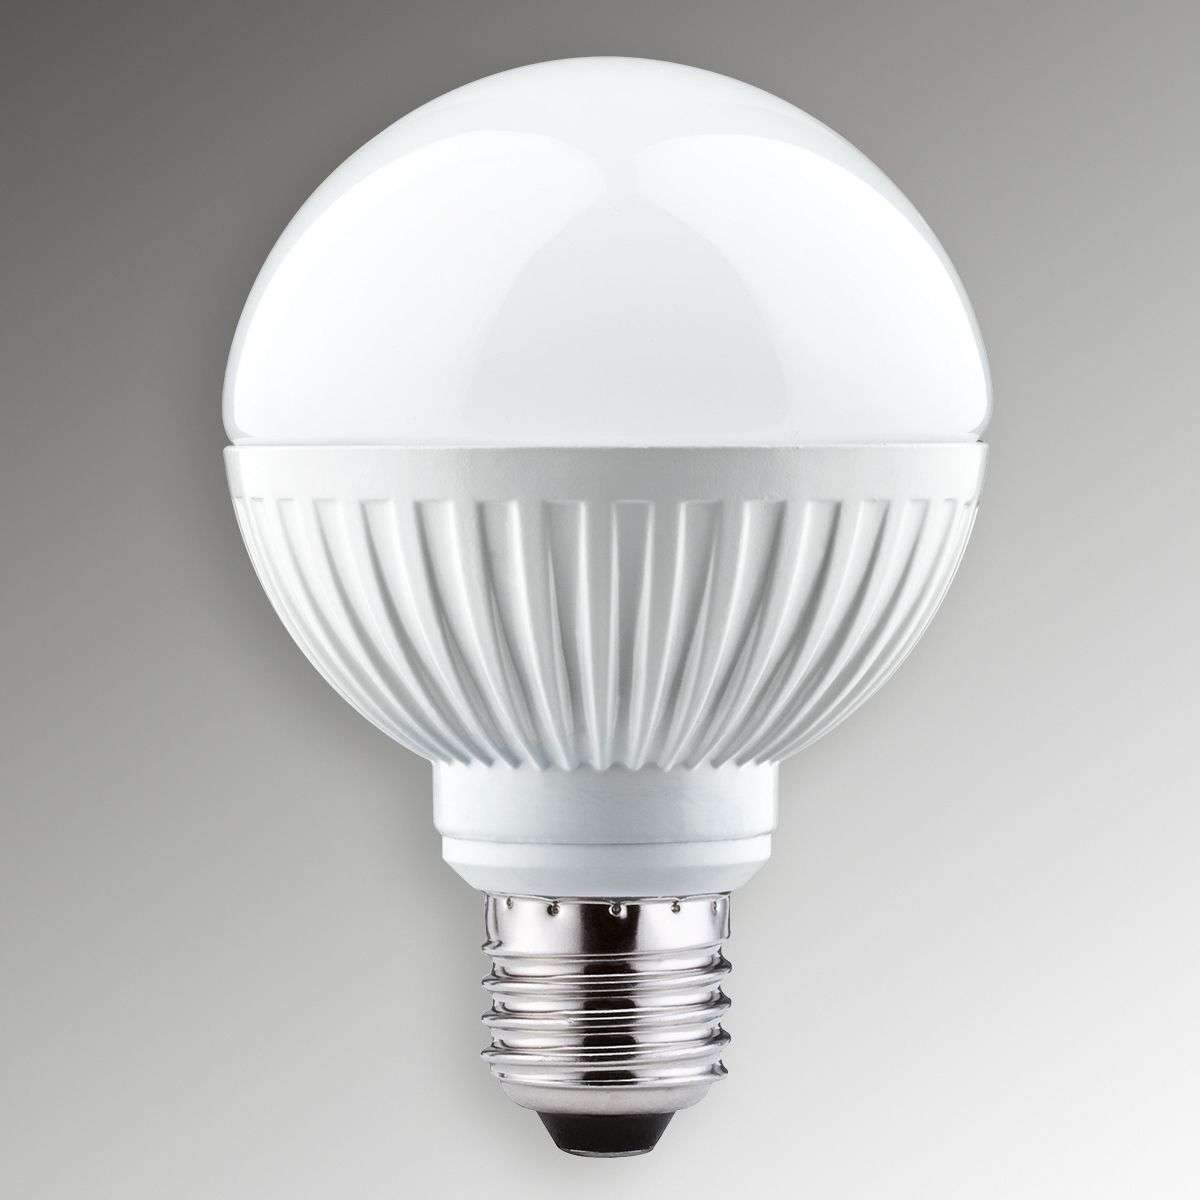 Acquista e27 9 5w 827 globo led 80 opale dimmerabile for Lampade led attacco e27